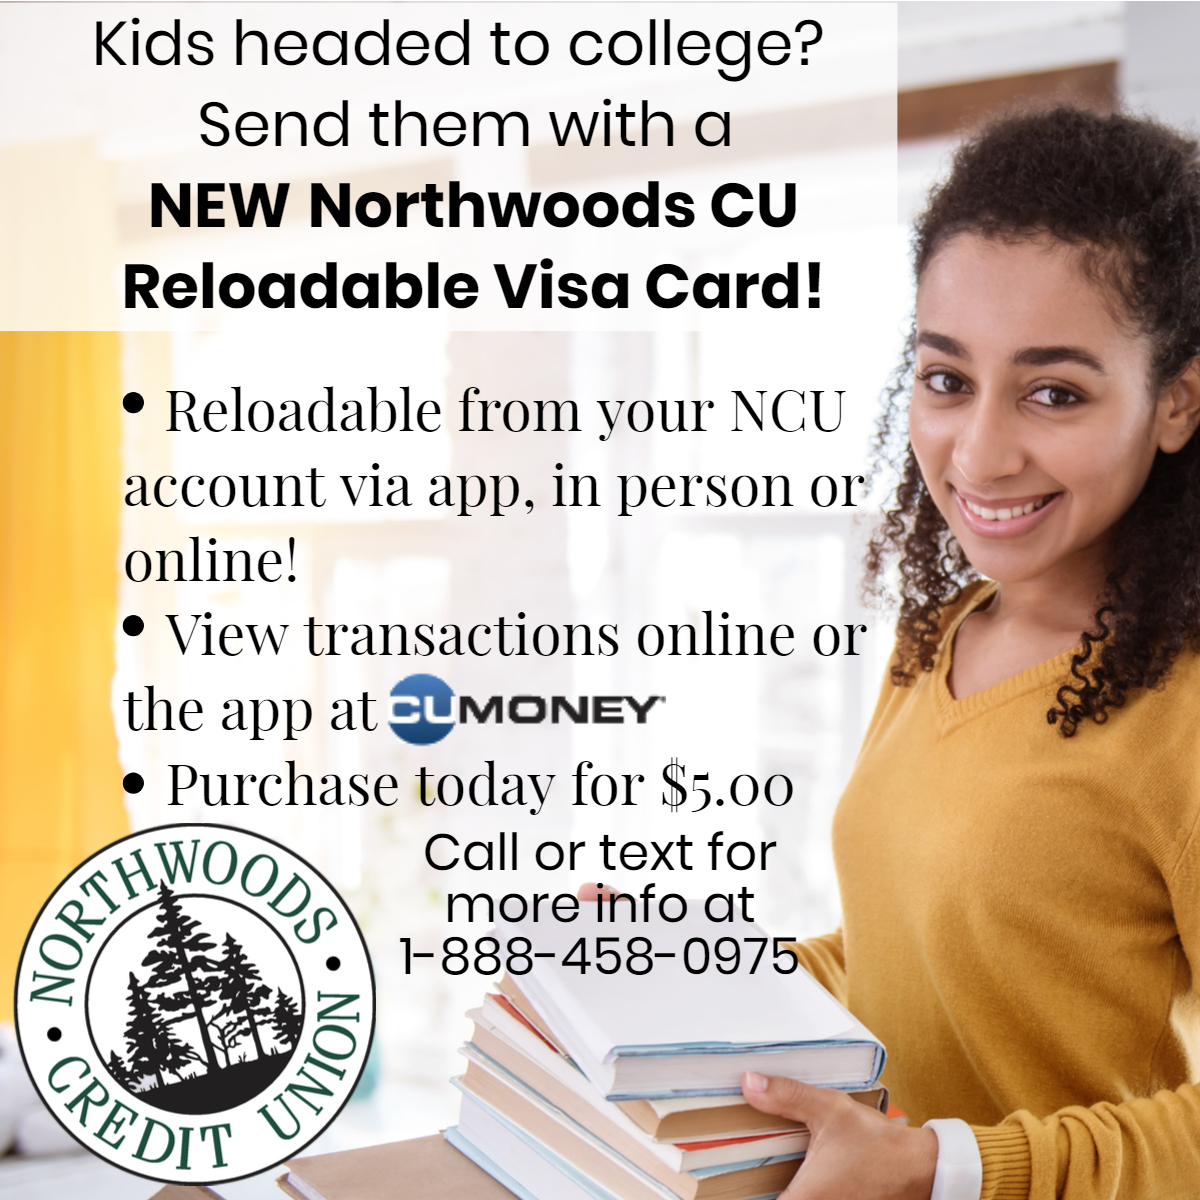 Kids heading to college? Send them with a NEW Northwoods CU reloadable Visa Card!  They are reloadable from your NCU account via app, in person or online! You can see transactions on the app or online at CU Money. PUrchase today for $5.00.  NCU Logo. Call